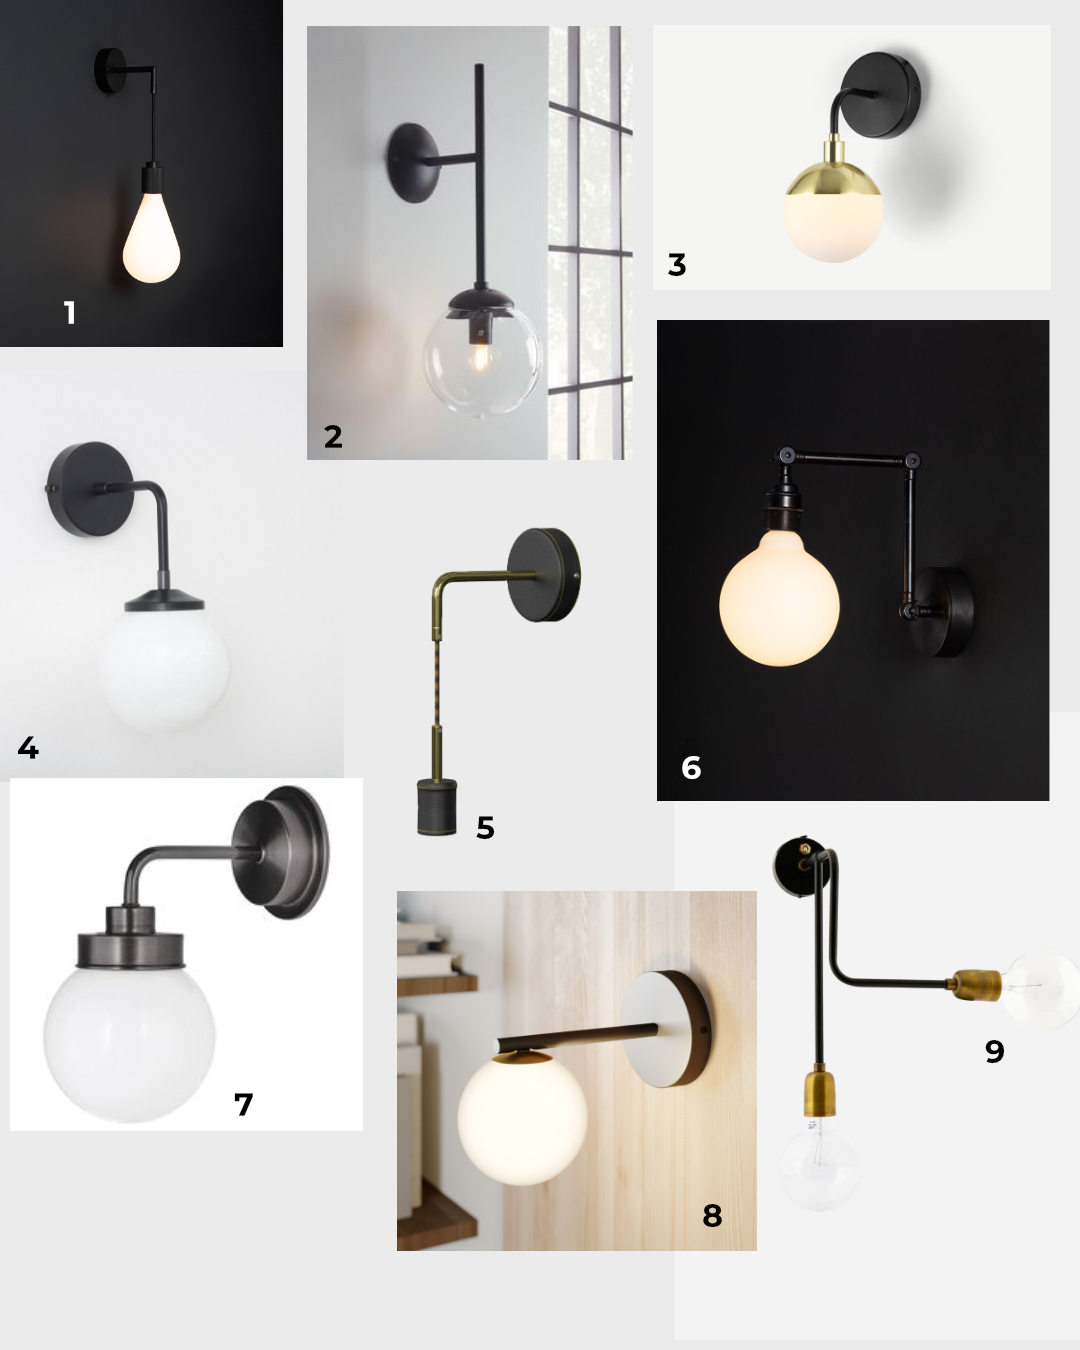 Wall light options for the bedroom